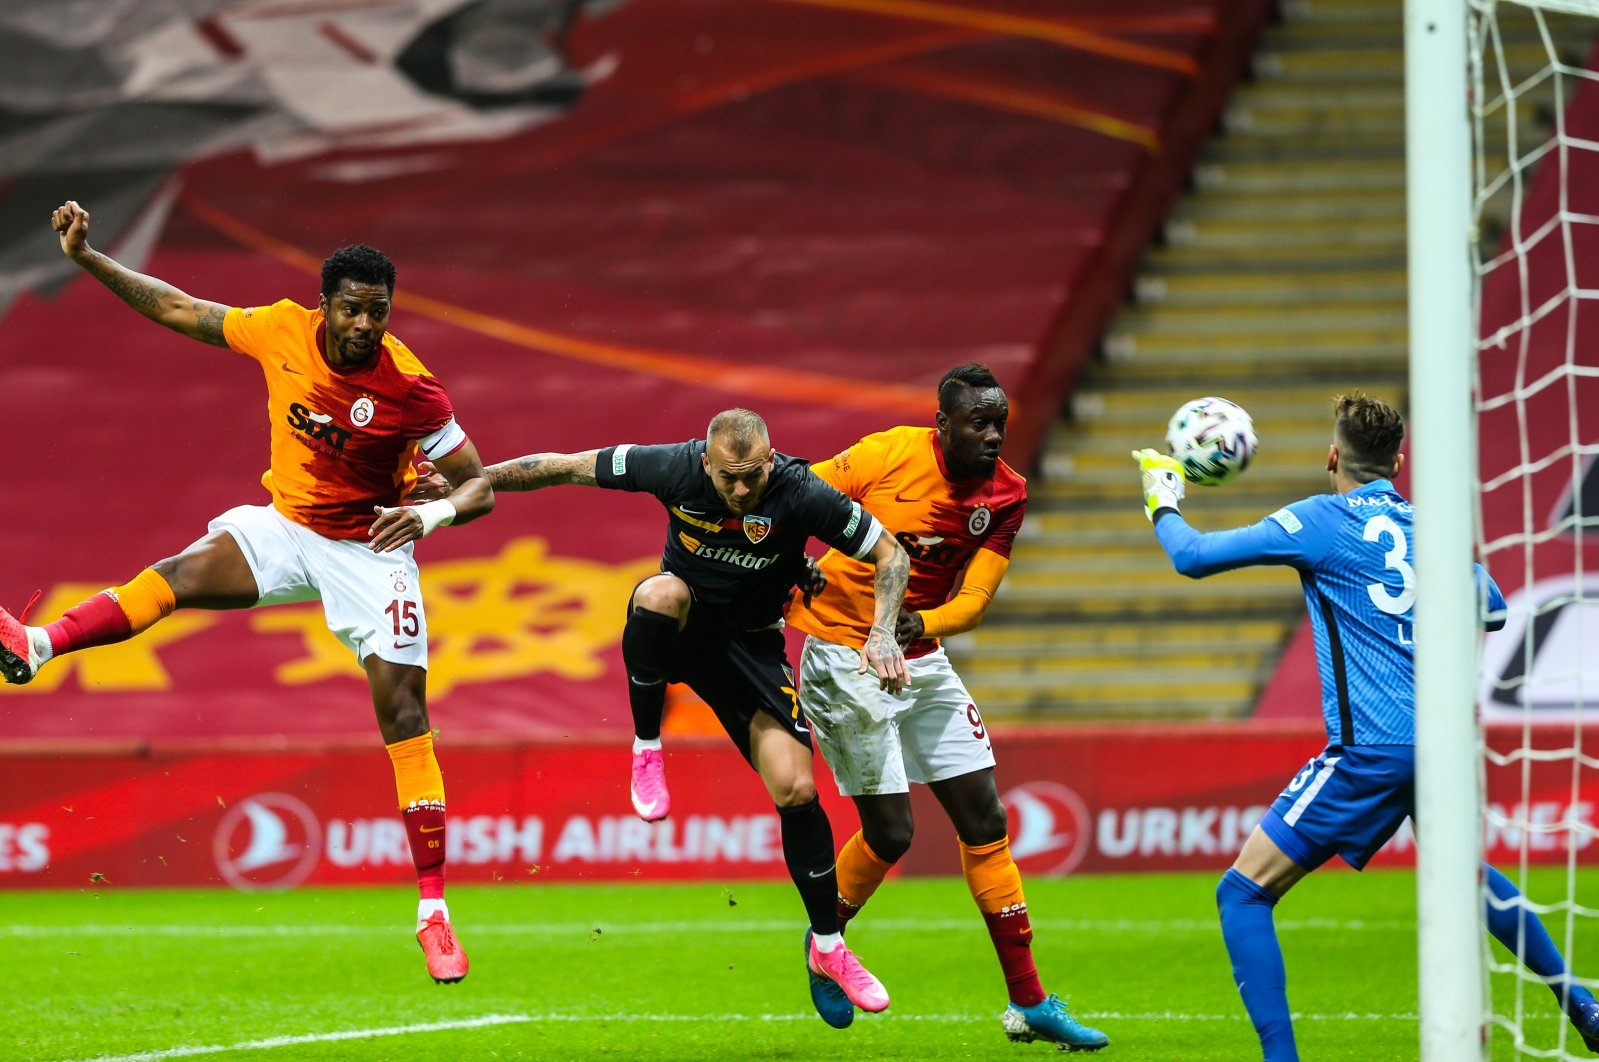 Galatasaray's Mbaye Diagne (C-R) in challenge with Kayserispor goalie Silviu Lung during the match at the Lions' home pitch Turk Telekom Stadium in Istanbul, Nov. 23, 2020 (AA Photo)